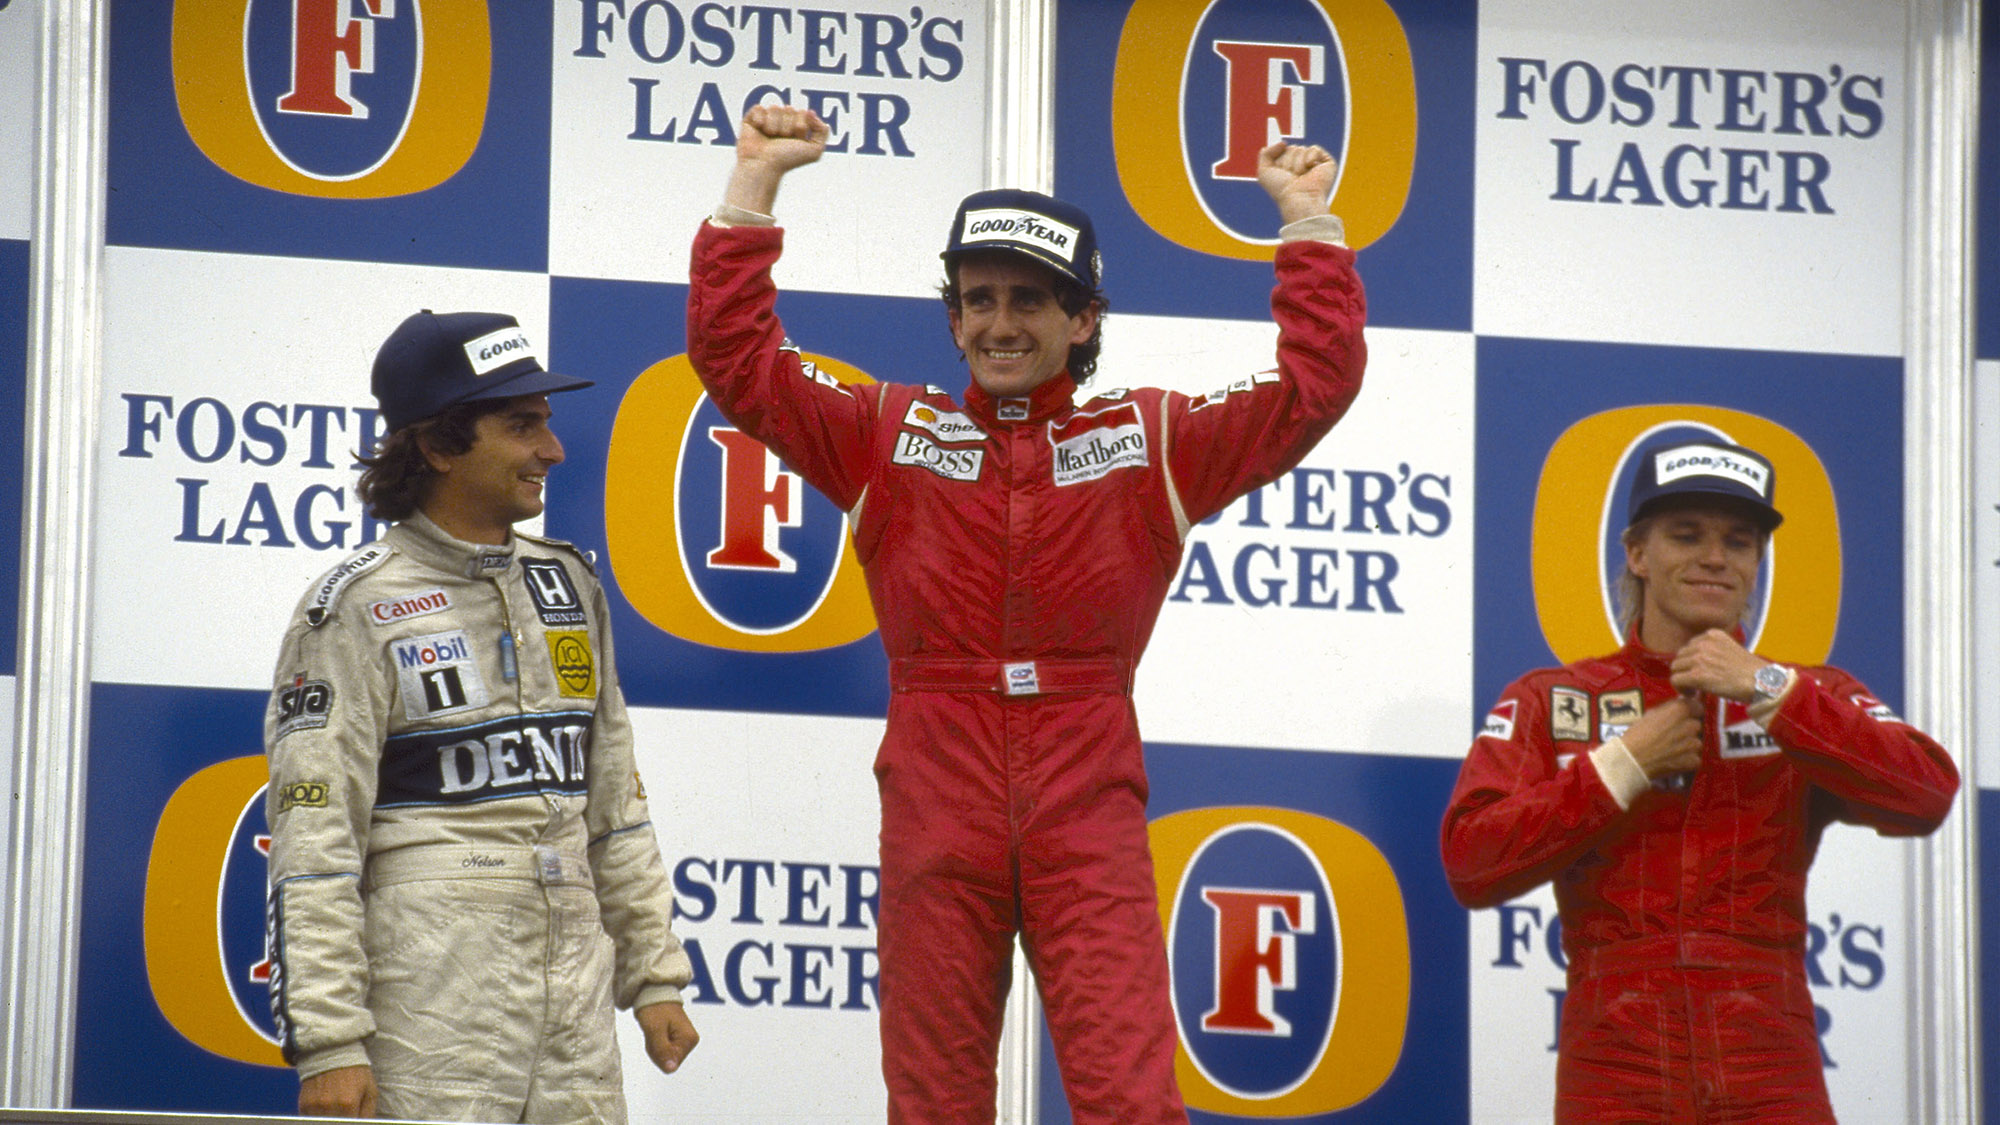 Alain Prost stands on the top of the podium at Adelaide after winning the 1986 Australian Grand Prix and that year's Formula 1 Drivers' championship